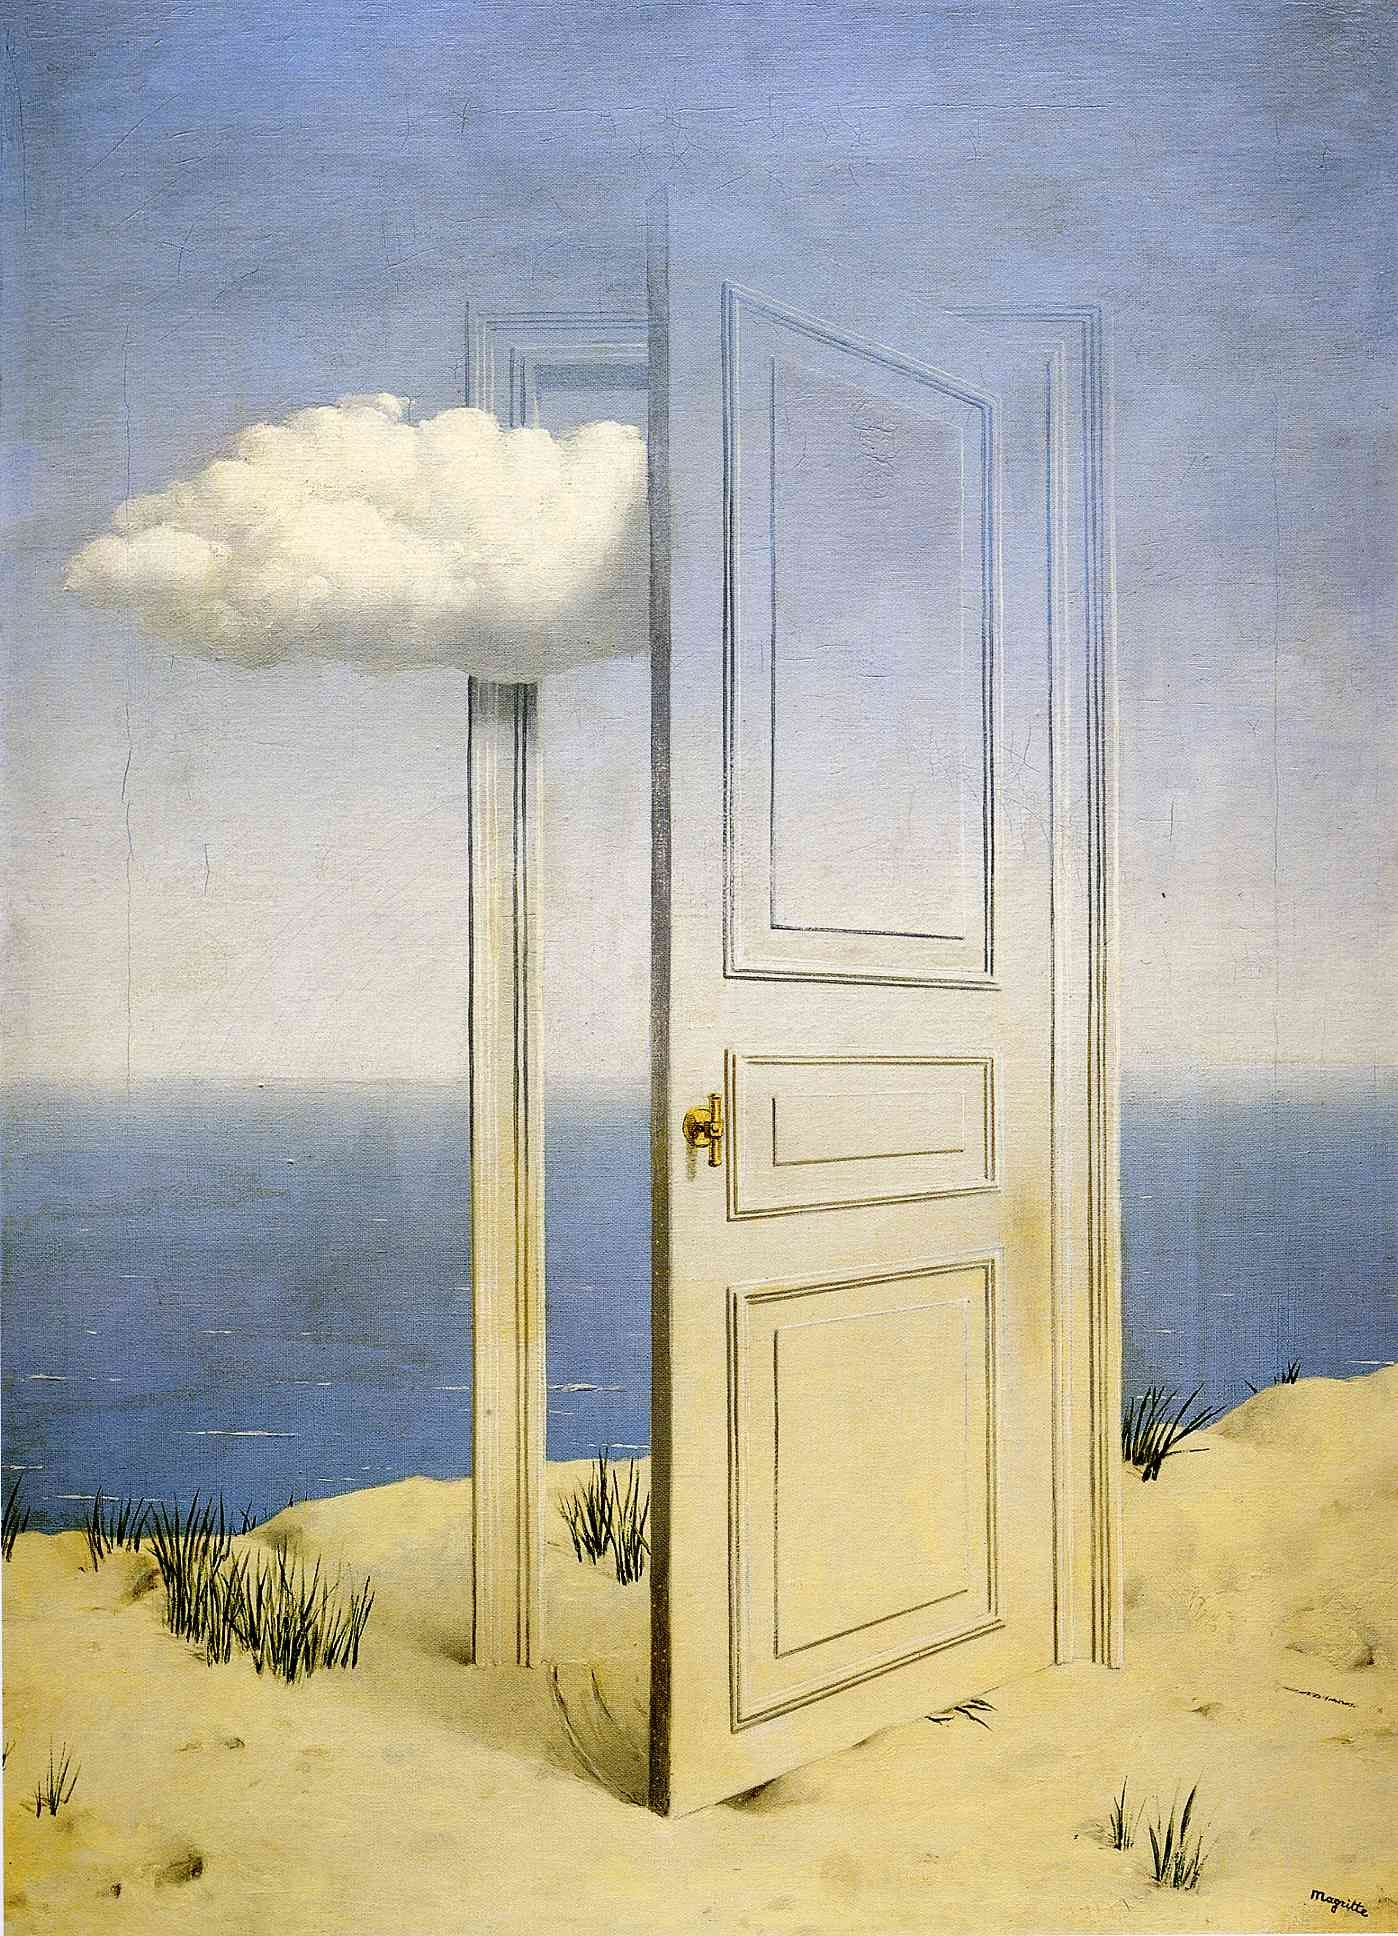 René Magritte: After the Water, the Clouds, 1926. Professional ...